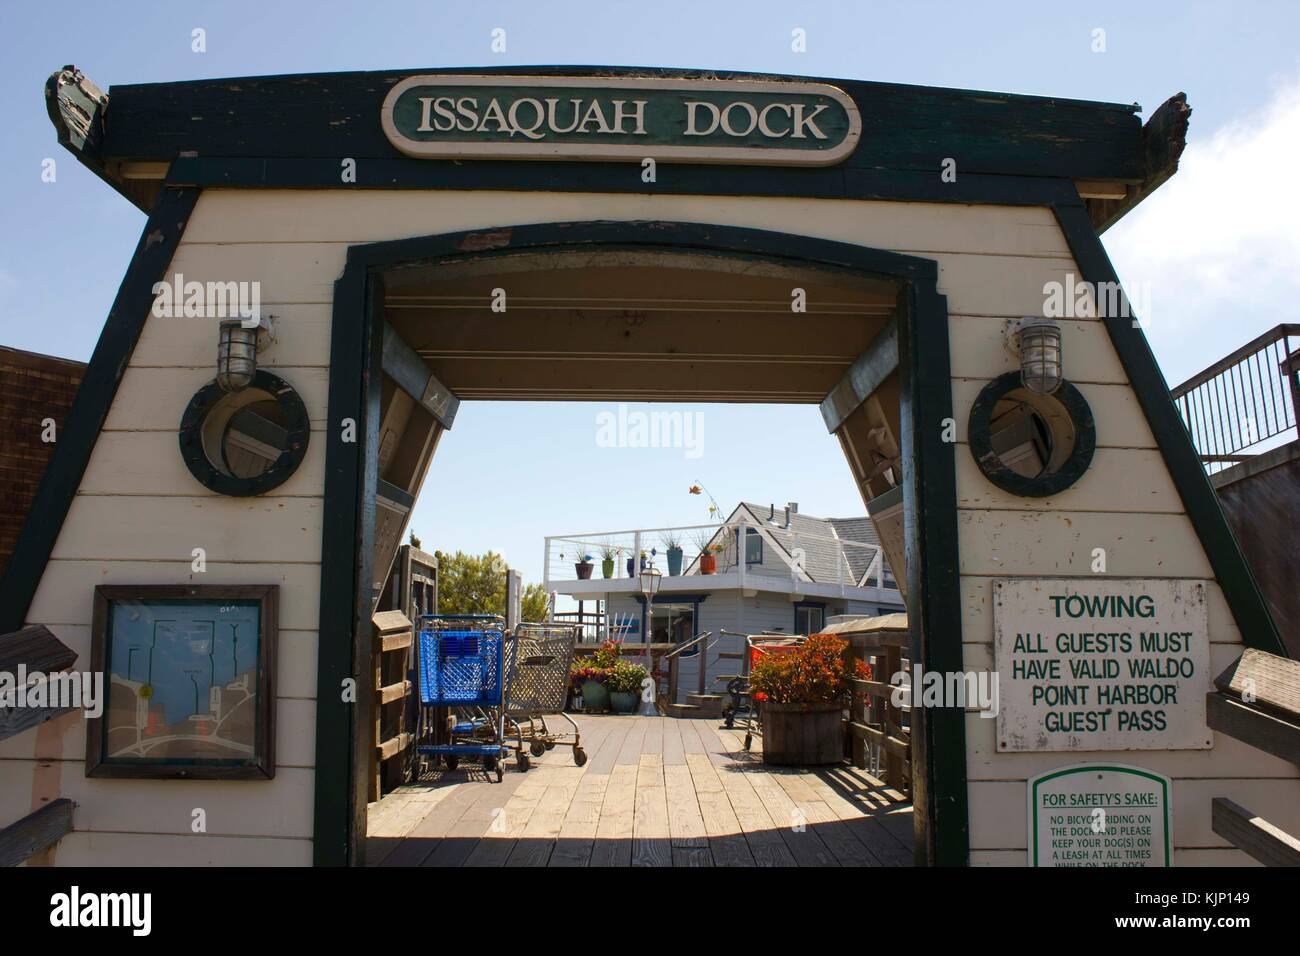 SAN FRANCISCO, USA - AUG 11 2013: Entrance gate of Issaquah dock on Sausalito houseboats, in the San Francisco Bay - Stock Image